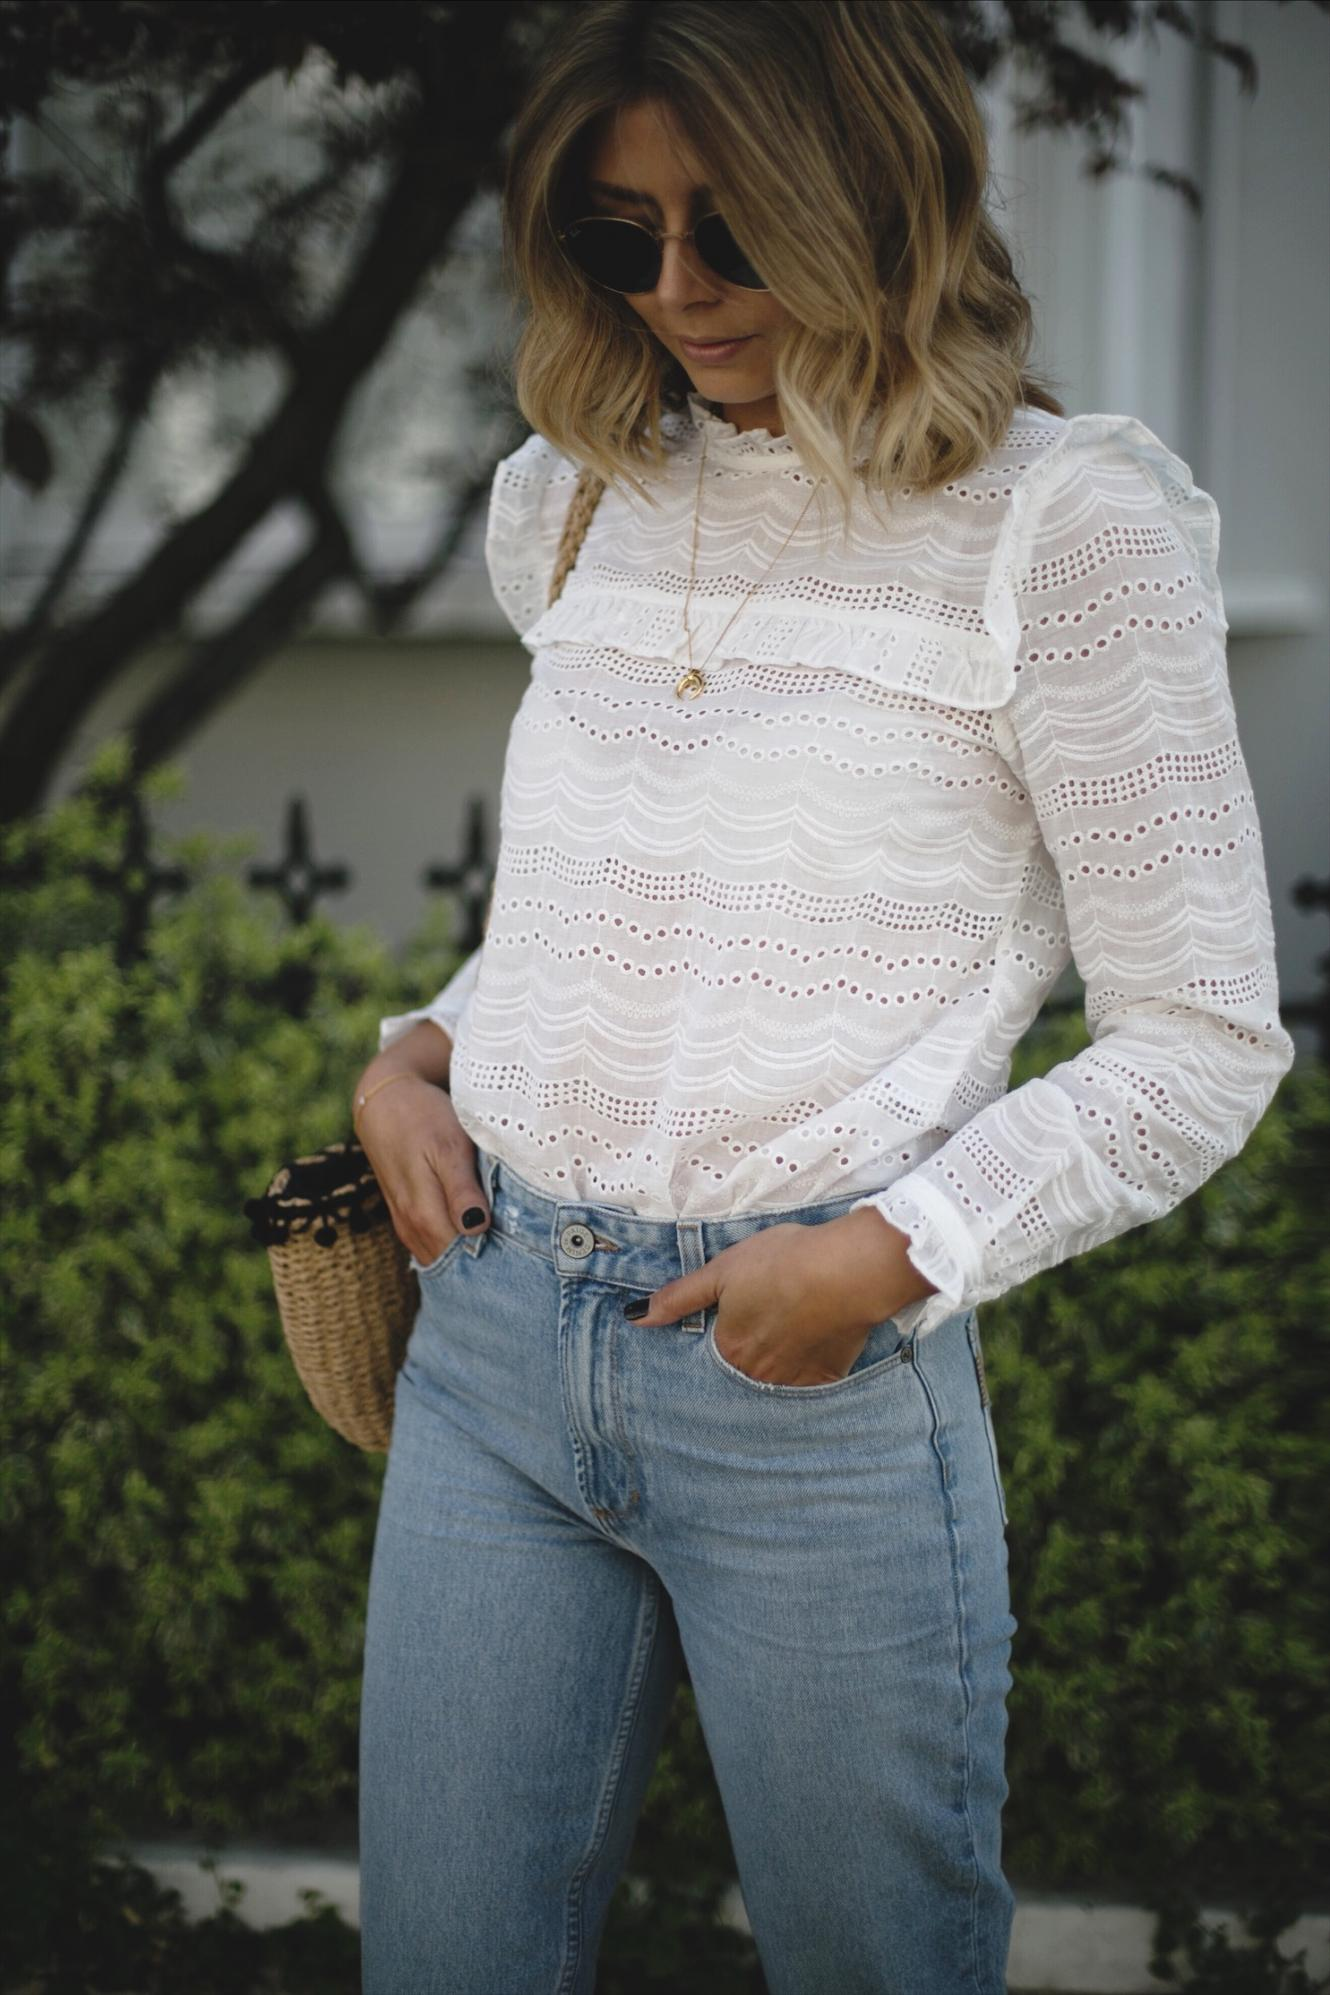 Emma Hill wears cream broderie anglais blouse, bleach wash high waisted jeans, straw basket bag with pom poms